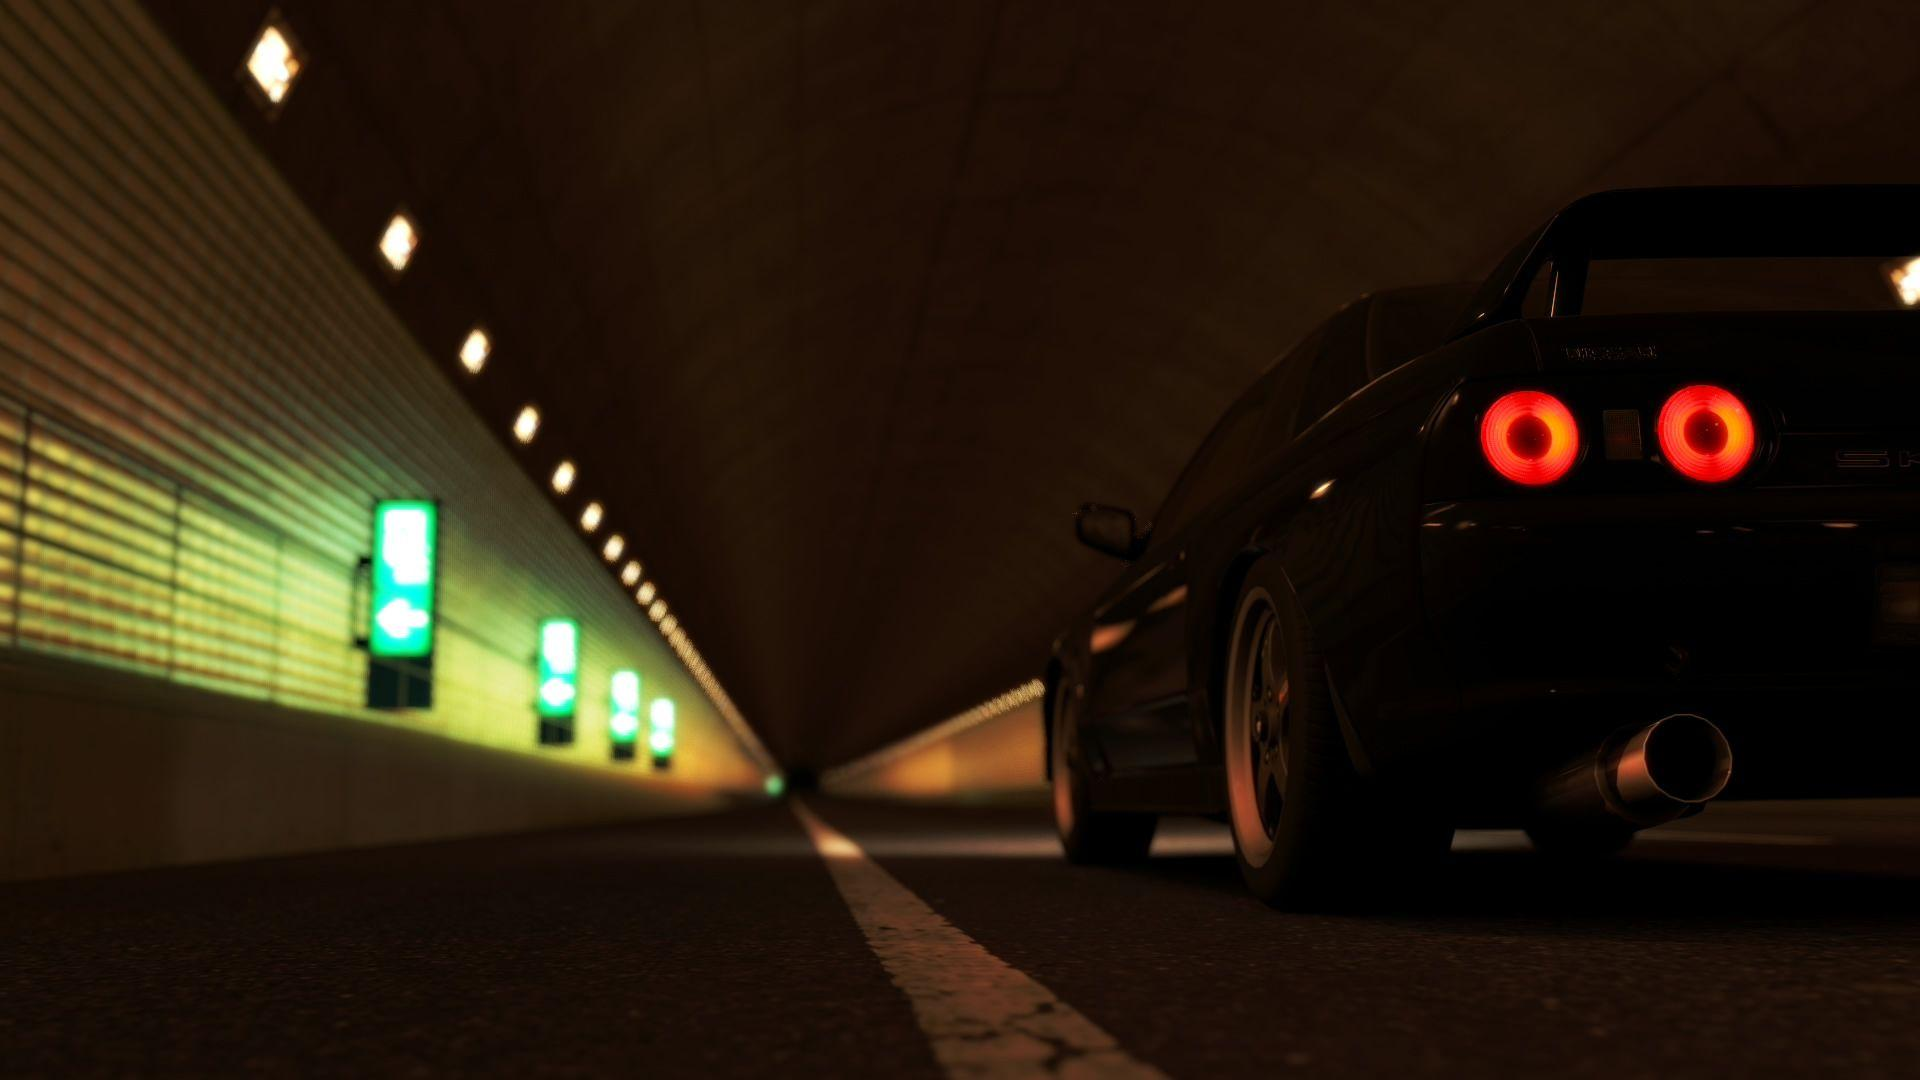 Skyline R32 Wallpaper 1 by ThunderBreak on DeviantArt